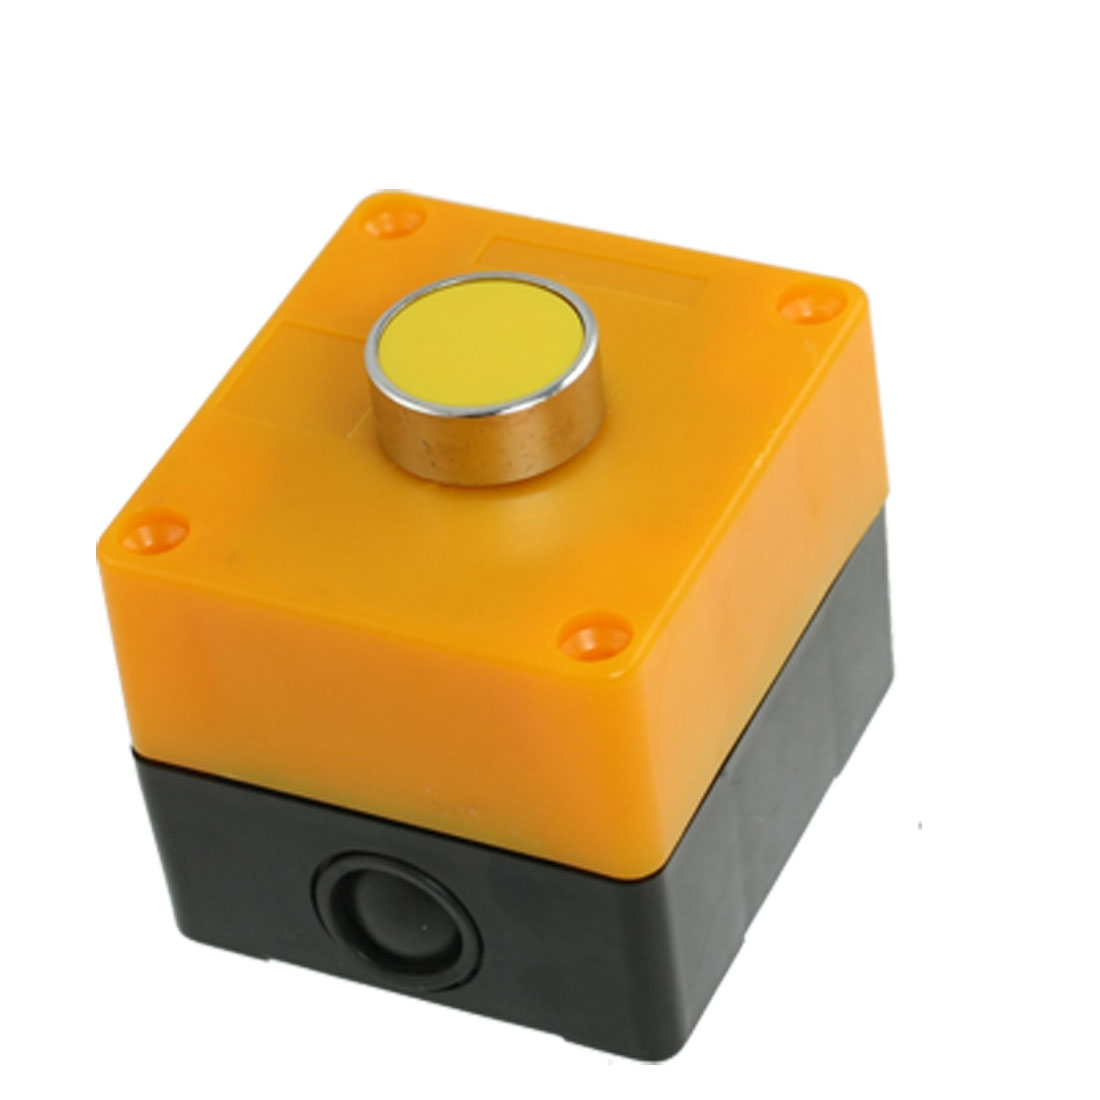 AC 240V 3A Normally Open Yellow Momentary Flat Pushbutton Switch Station